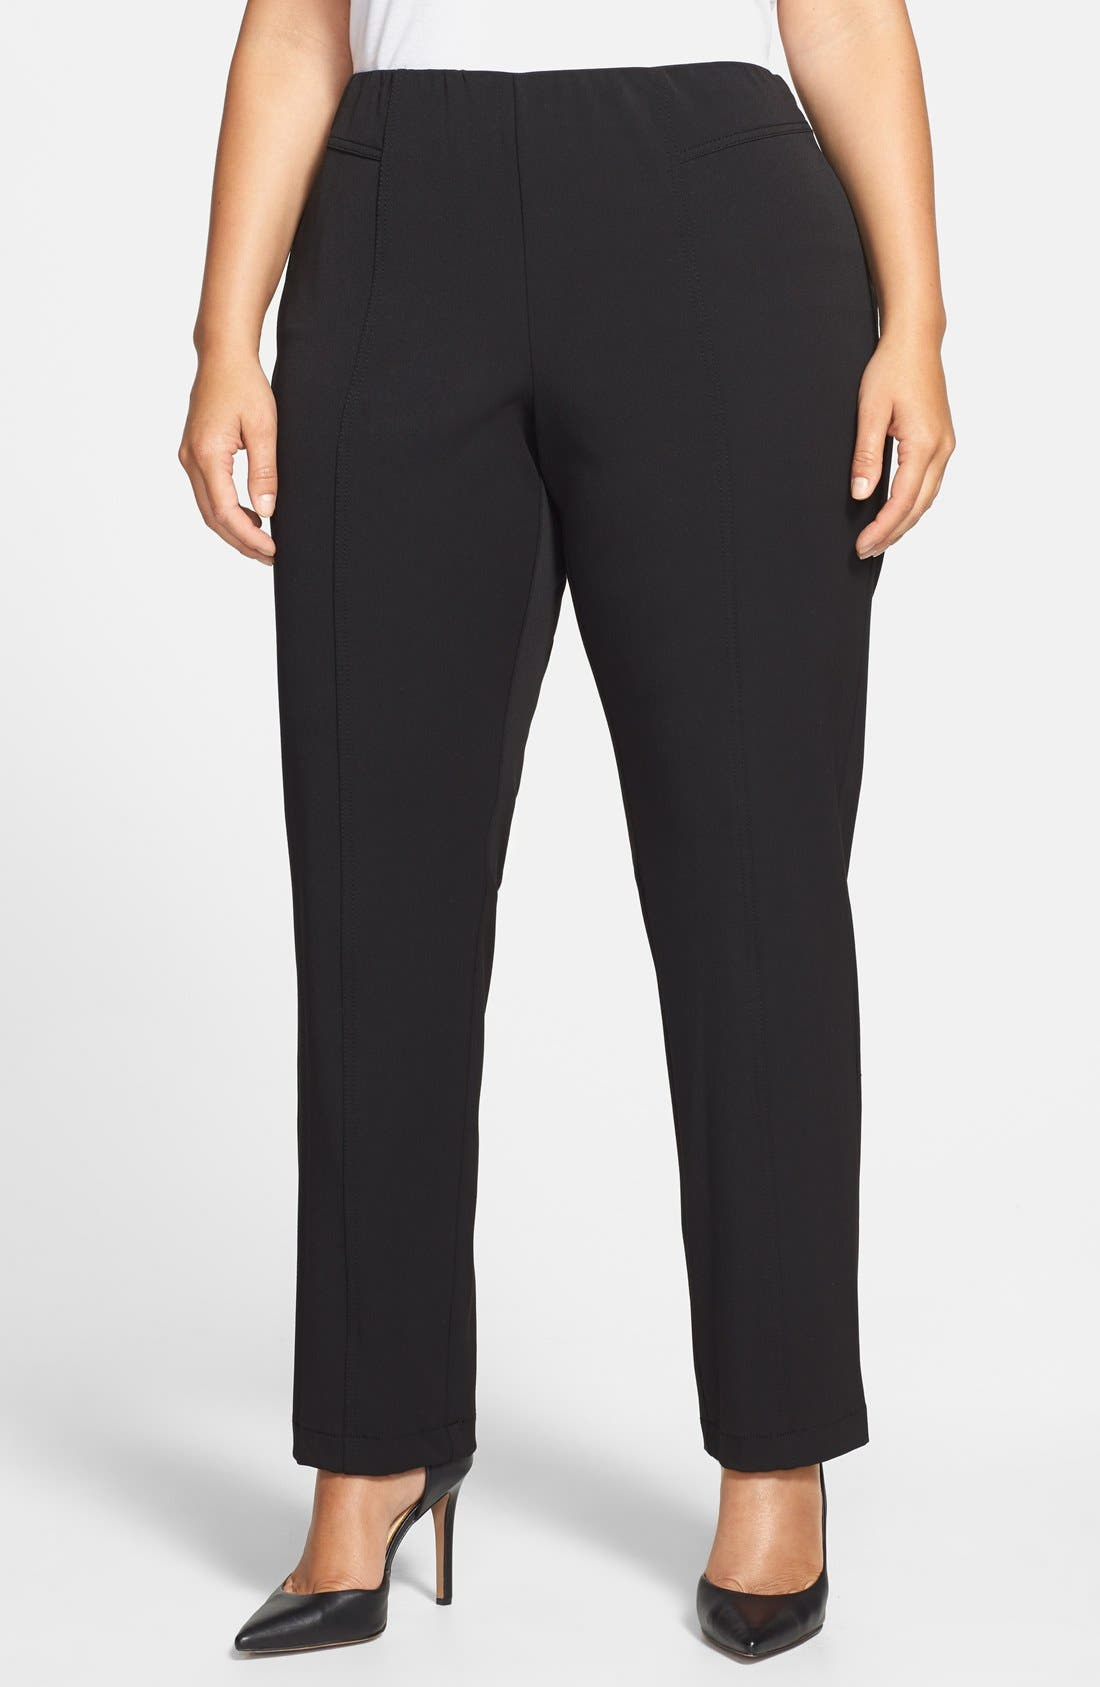 Plus Women's Vince Camuto Seam Detail Pants